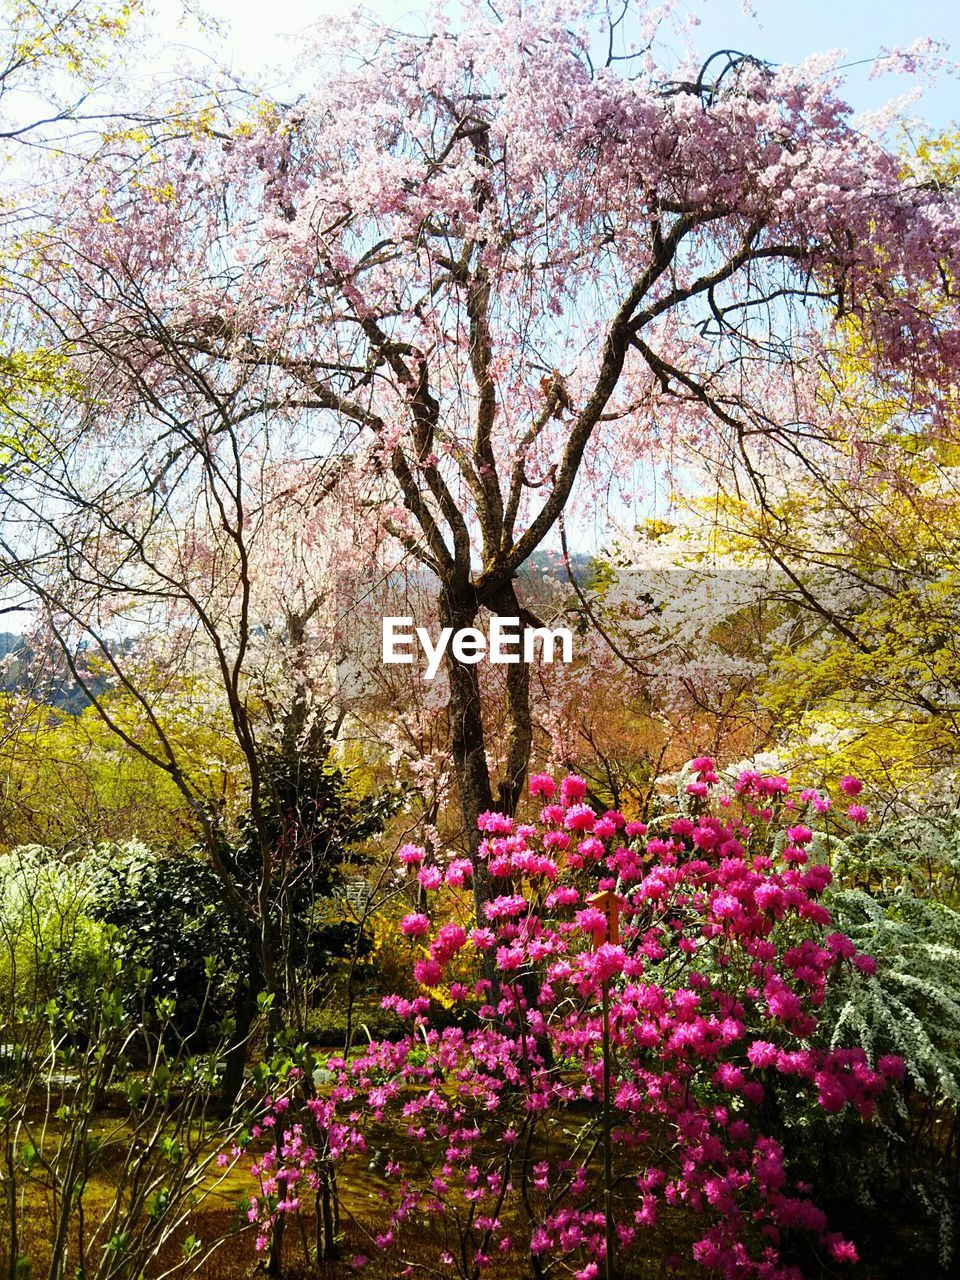 plant, flower, flowering plant, tree, growth, beauty in nature, freshness, pink color, fragility, nature, vulnerability, blossom, tranquility, park, day, springtime, branch, no people, park - man made space, botany, outdoors, cherry blossom, cherry tree, spring